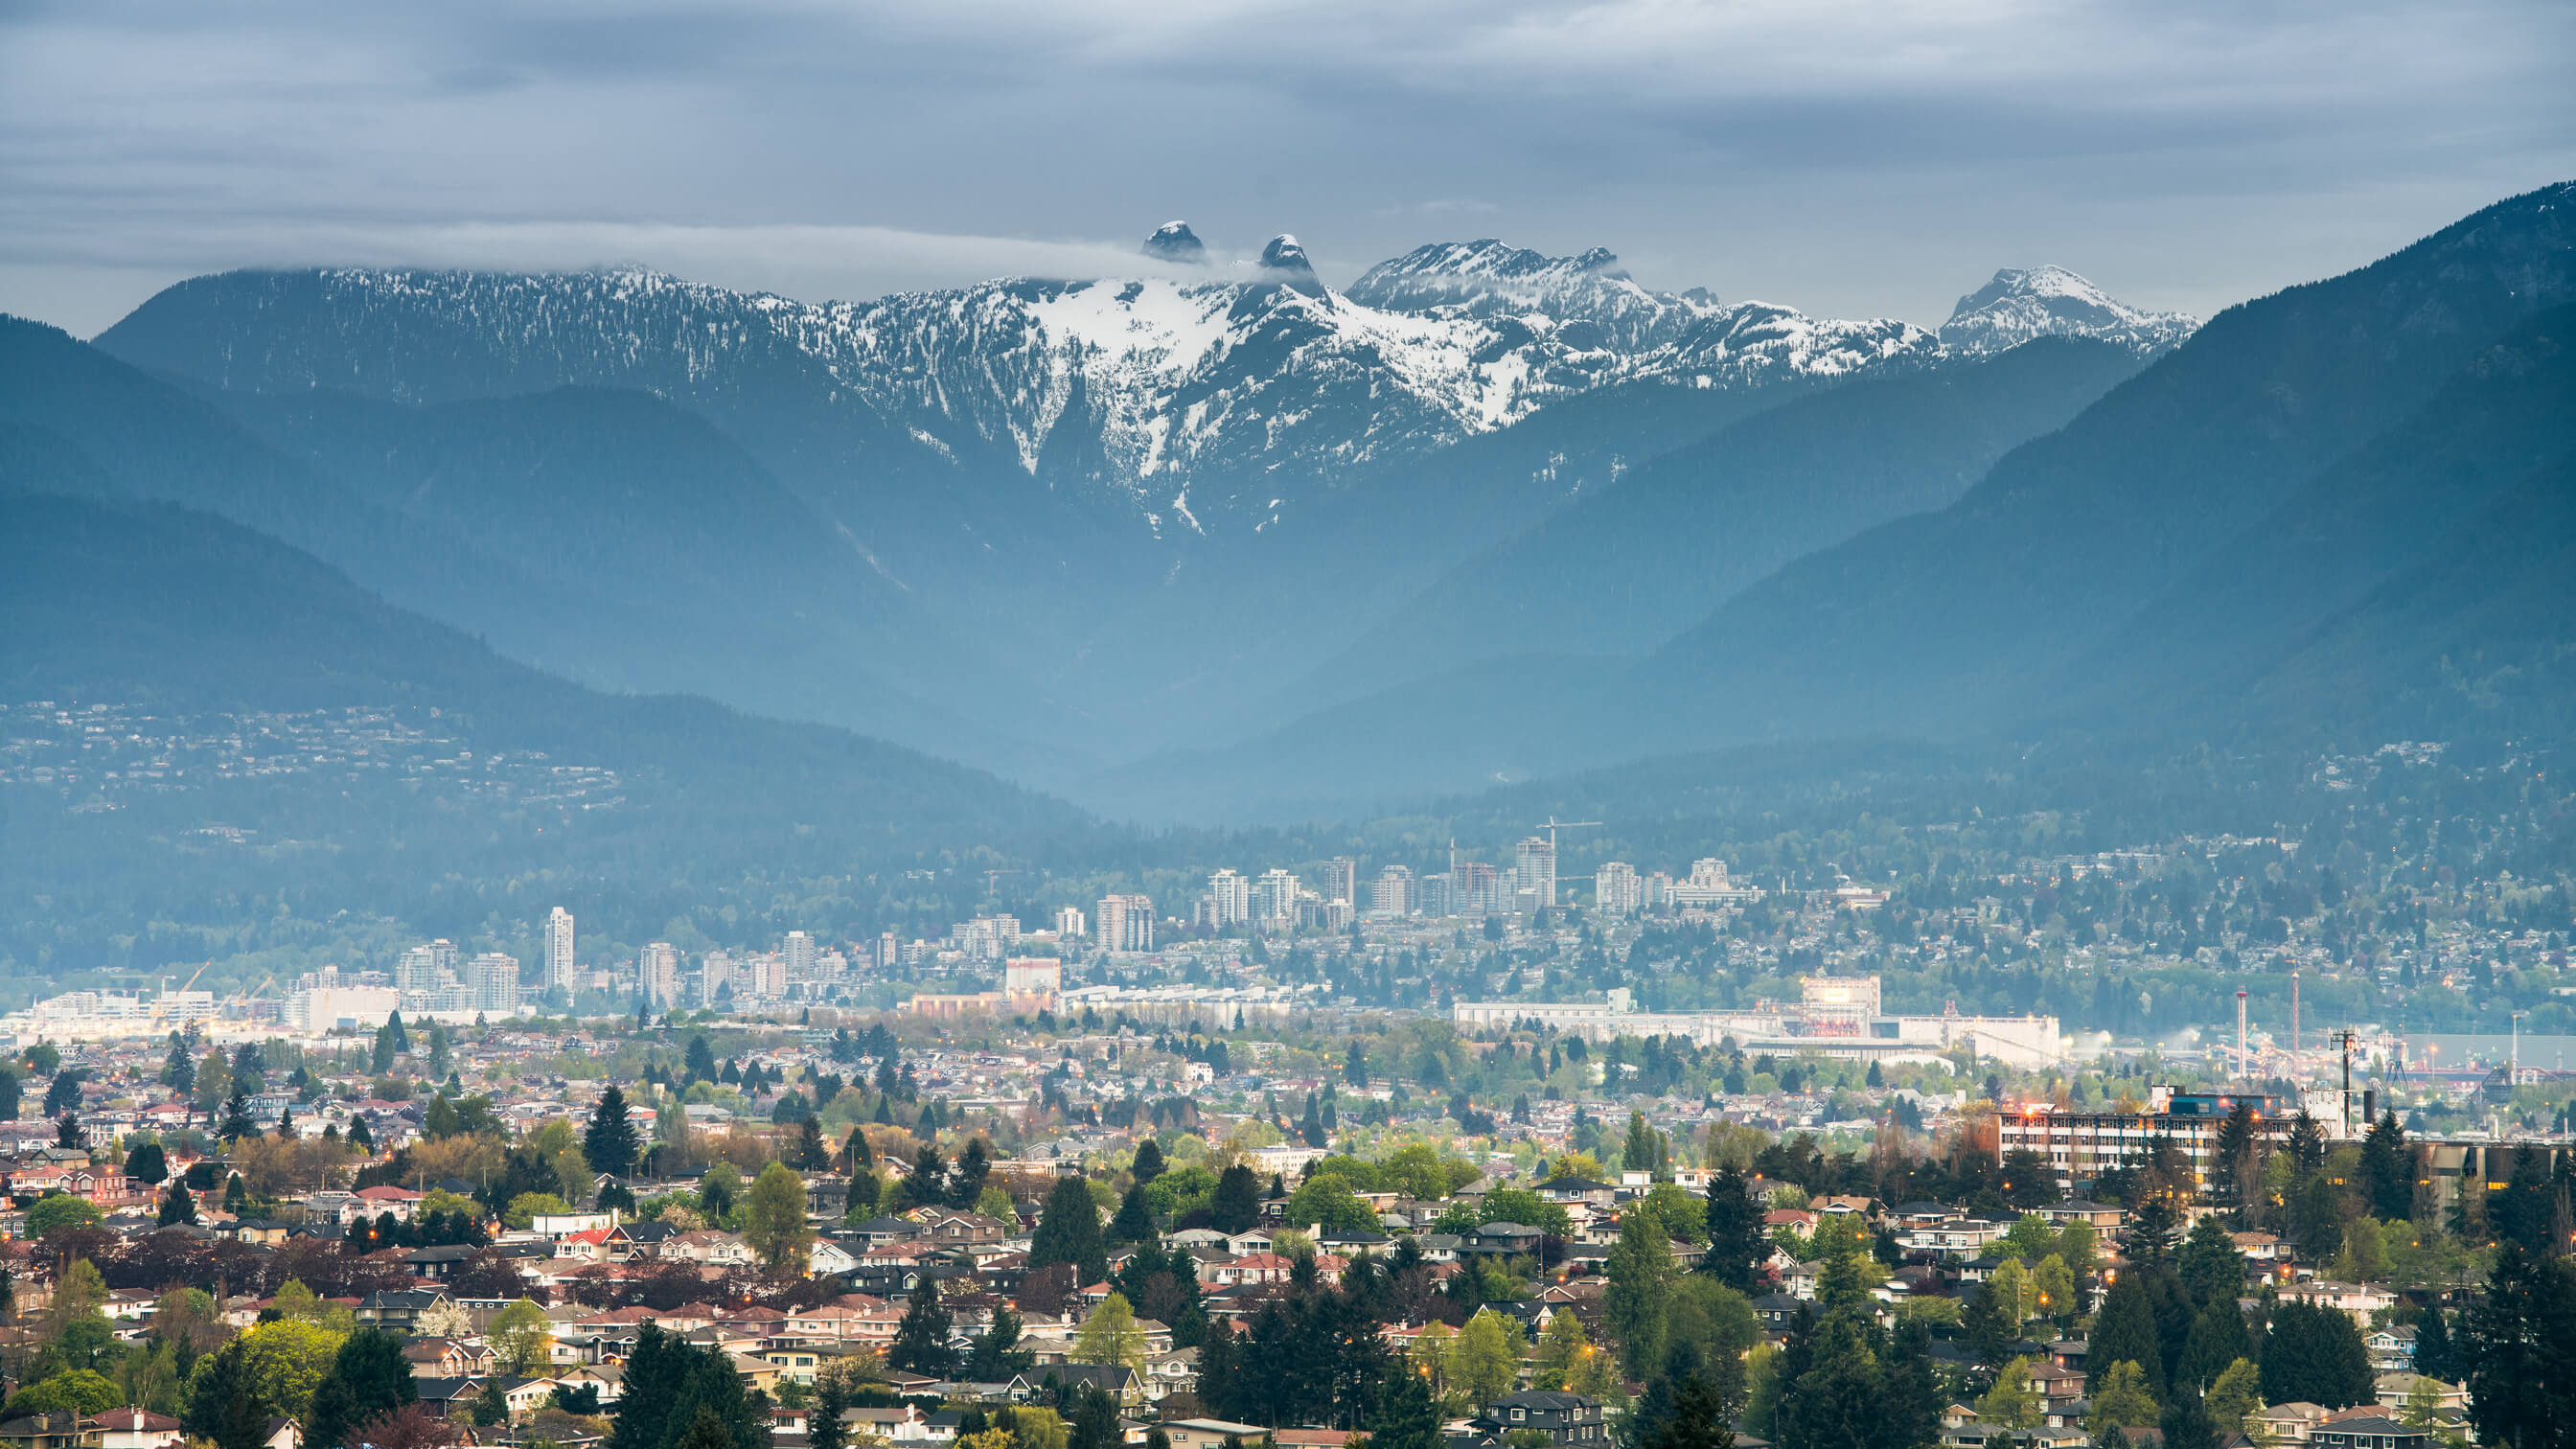 View across Vancouver to the mountains